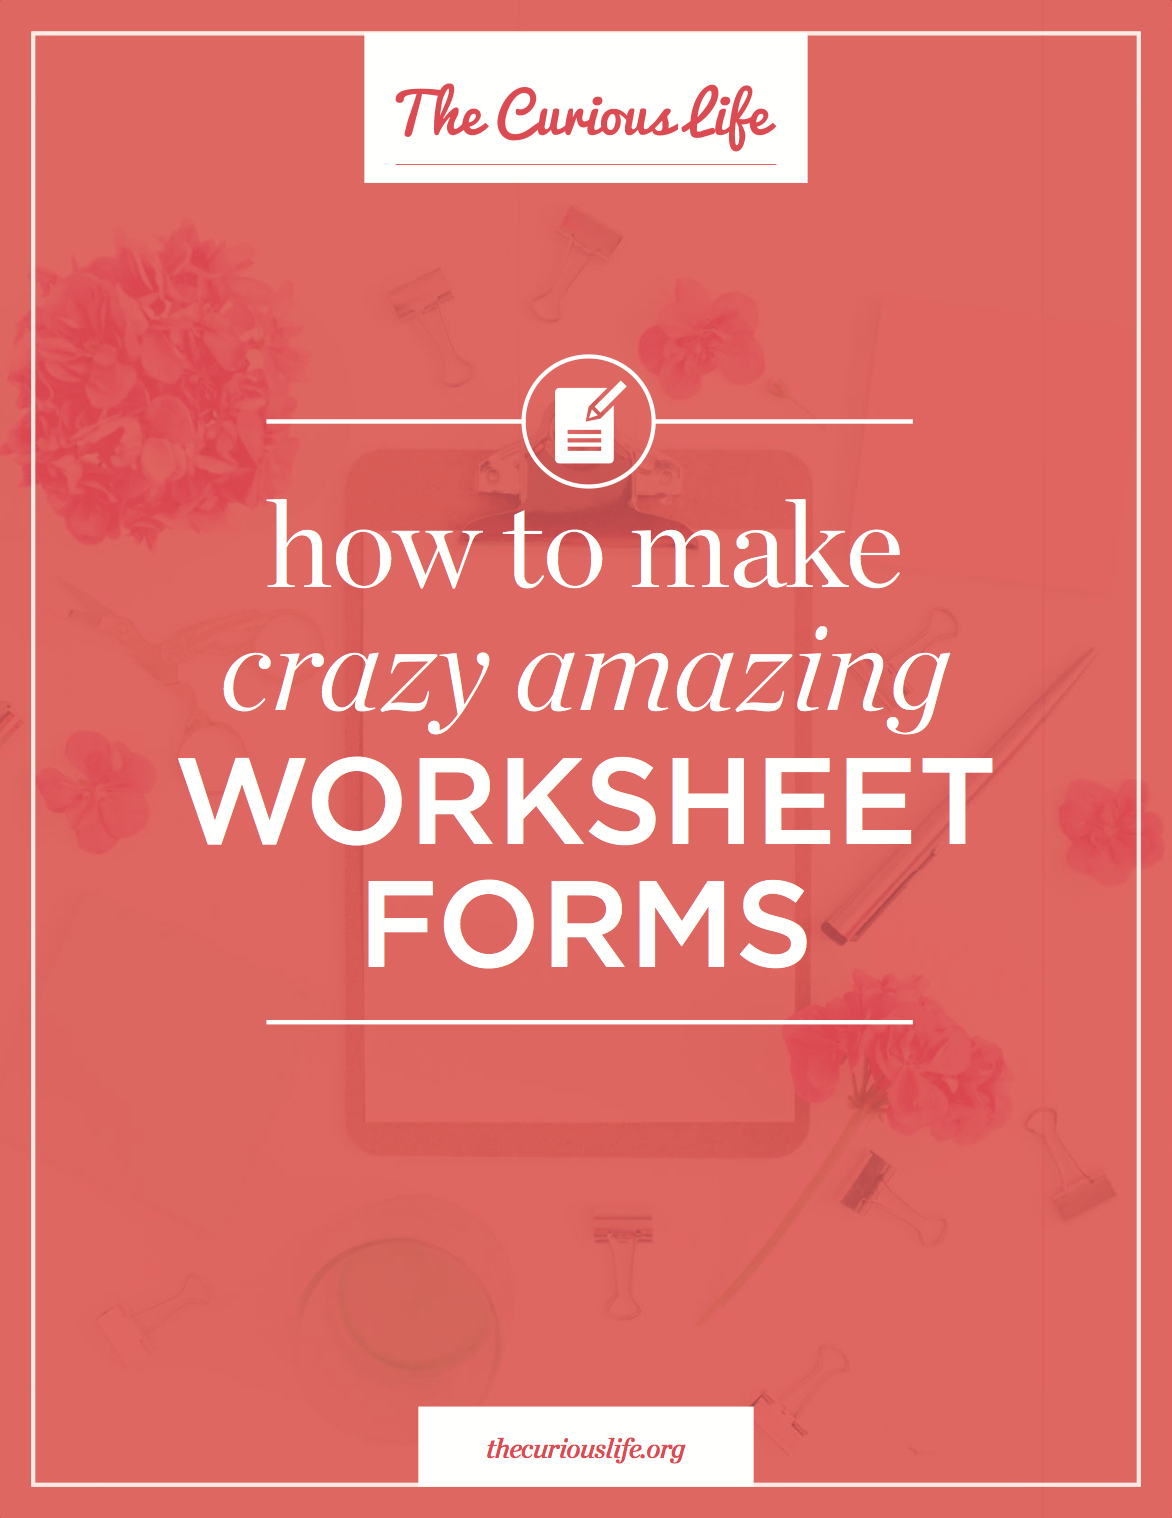 How to make editable worksheets